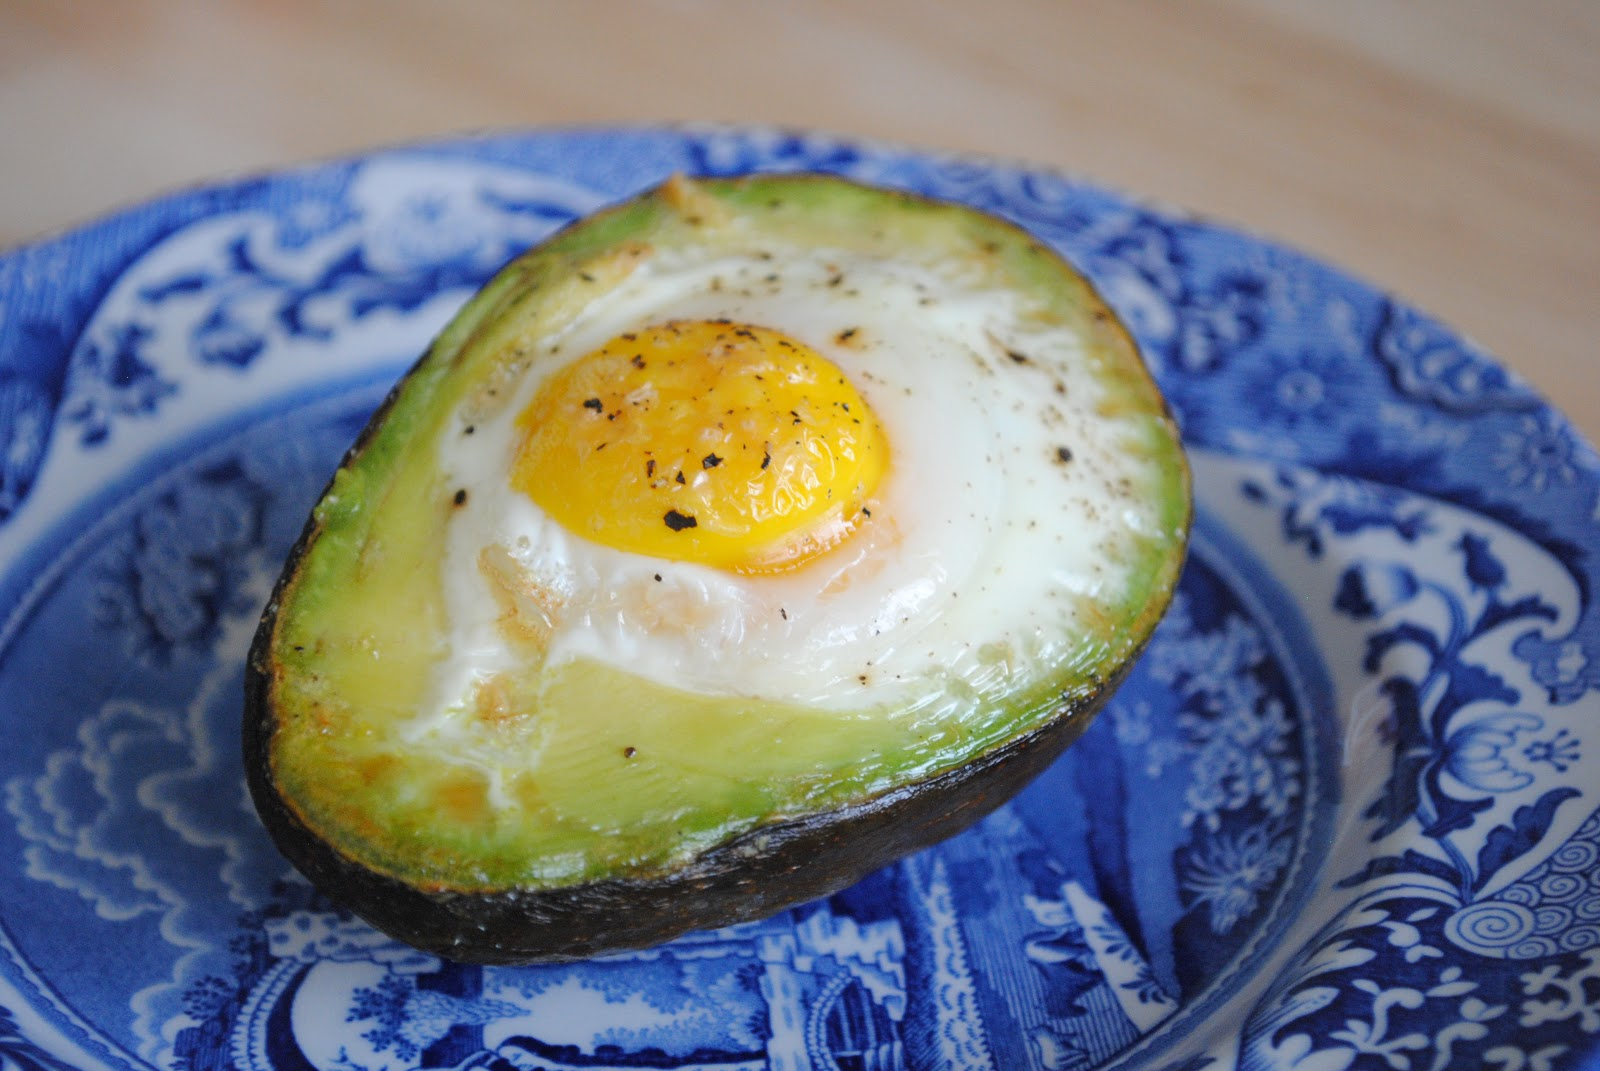 Southern Curls & Pearls: Avocado Egg Bake